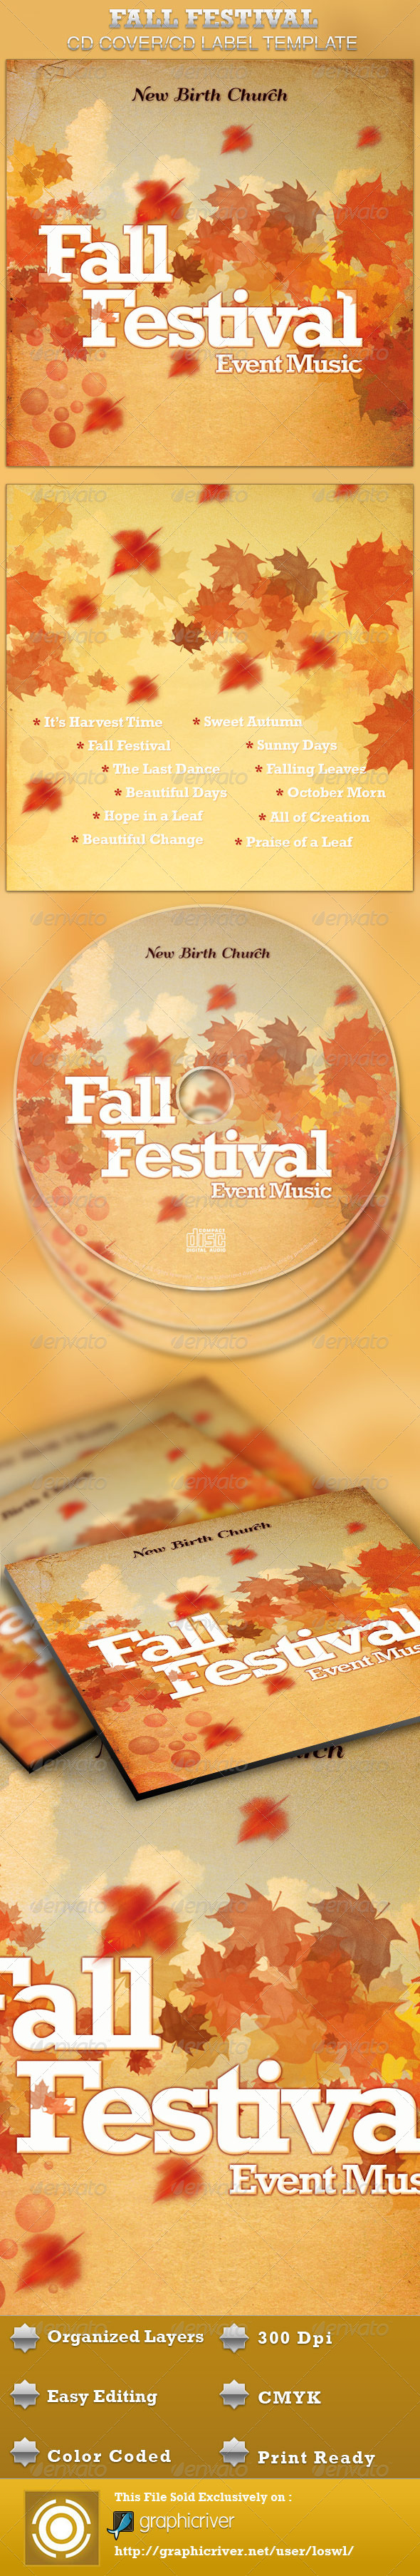 GraphicRiver Fall Festival CD Artwork Template 4257617